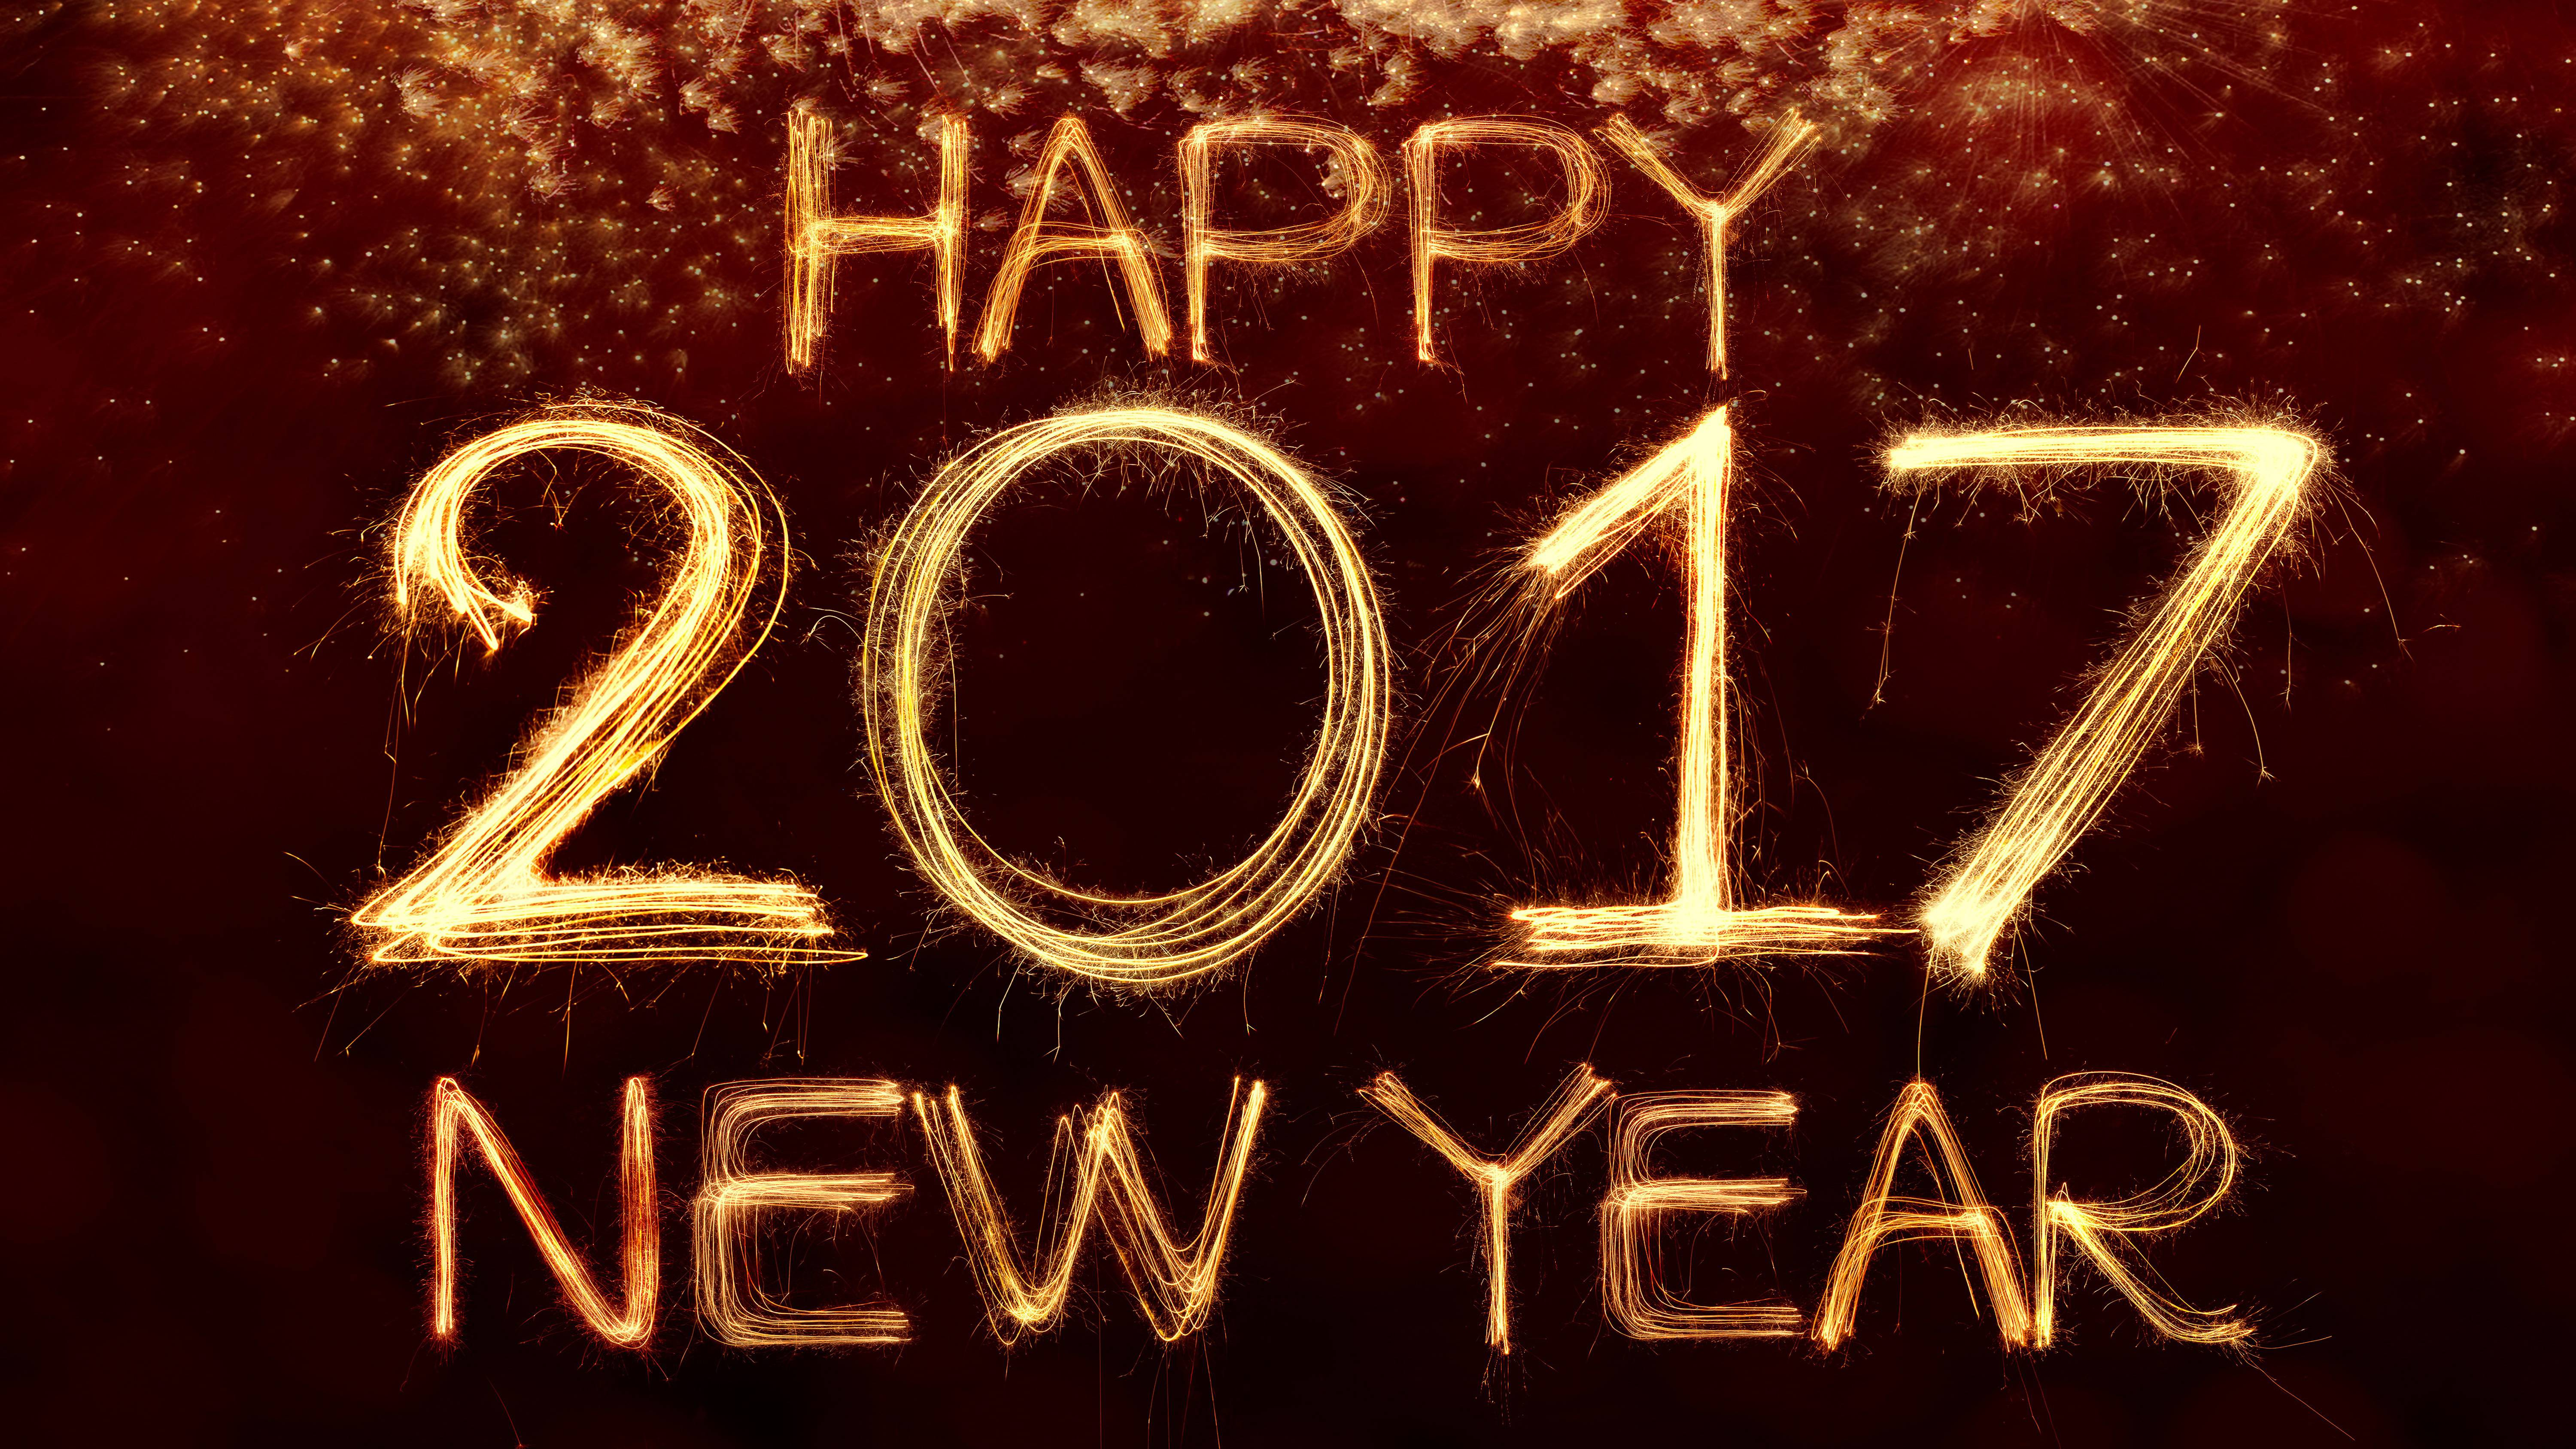 Happy New Year 2017 Hd - Happy New Year 17 , HD Wallpaper & Backgrounds